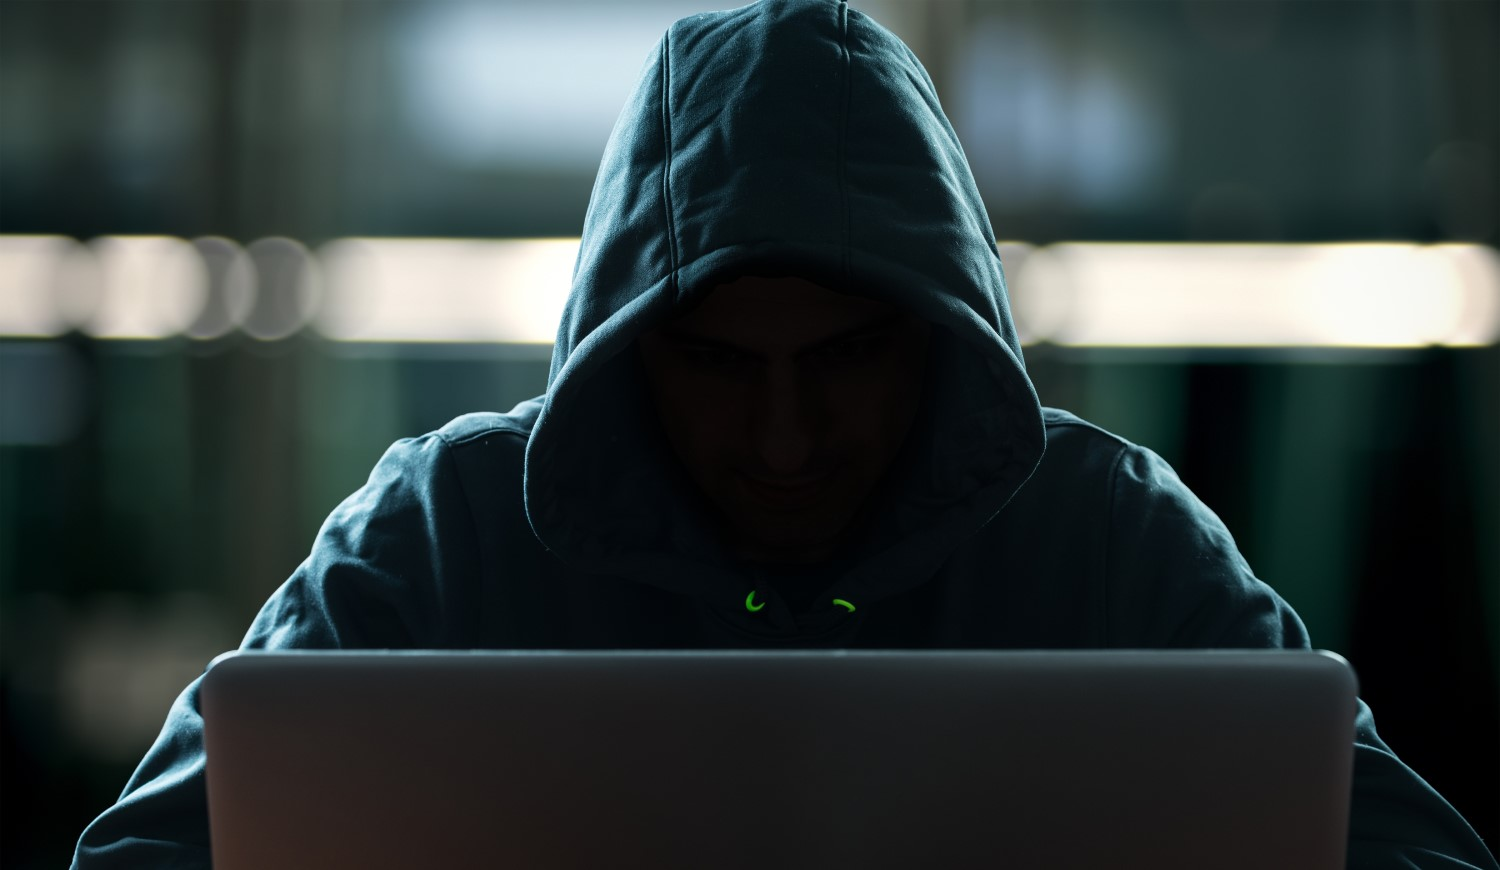 Poly Network Hacker Releases Private Key for Remaining Looted $141M